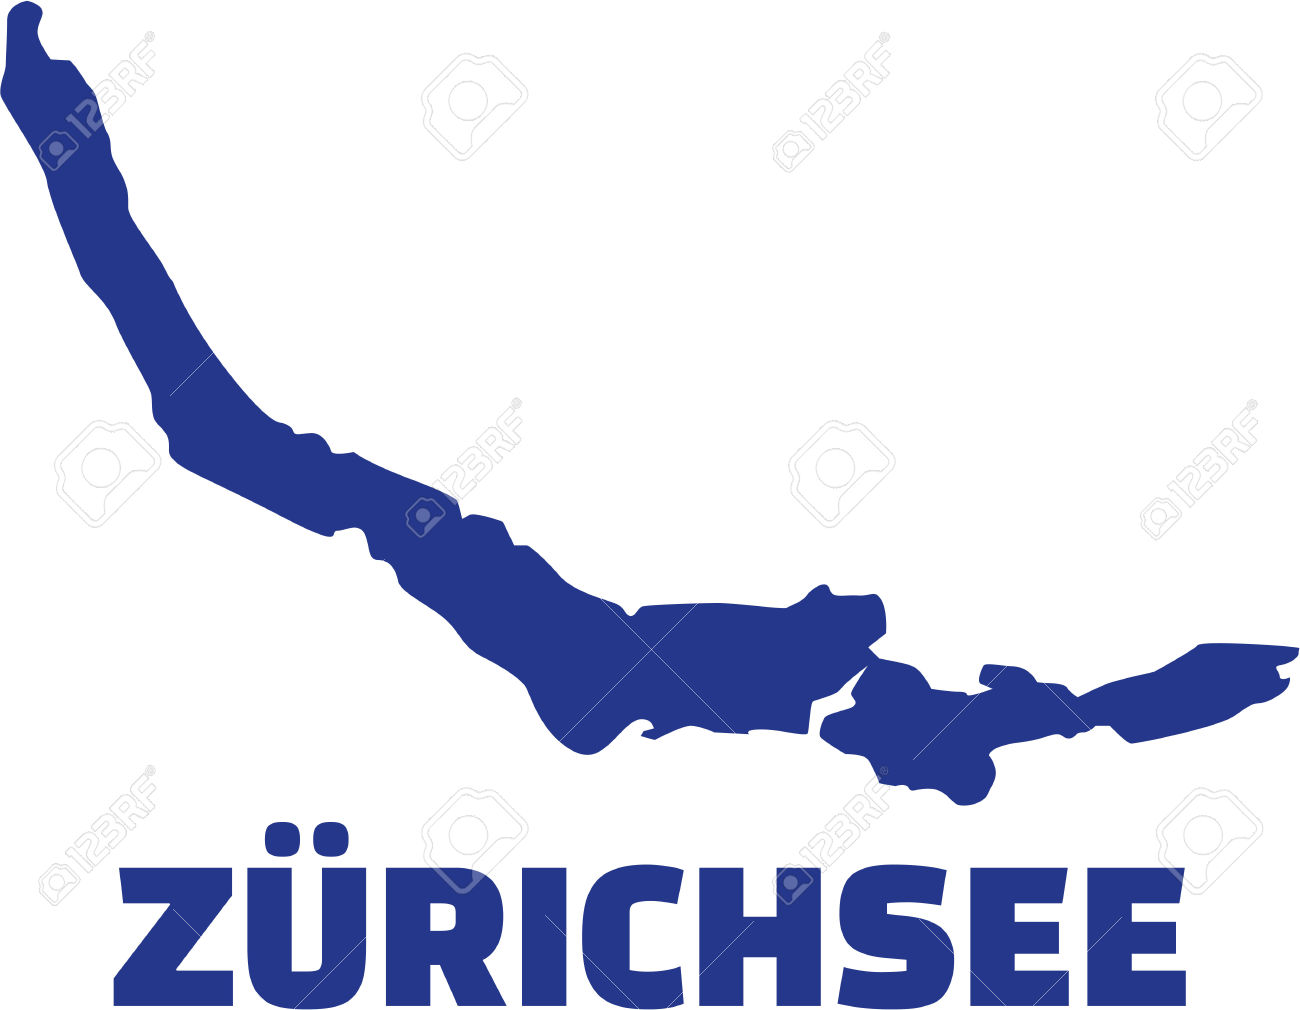 Lake Zurich Silhouette With Name Royalty Free Cliparts, Vectors.